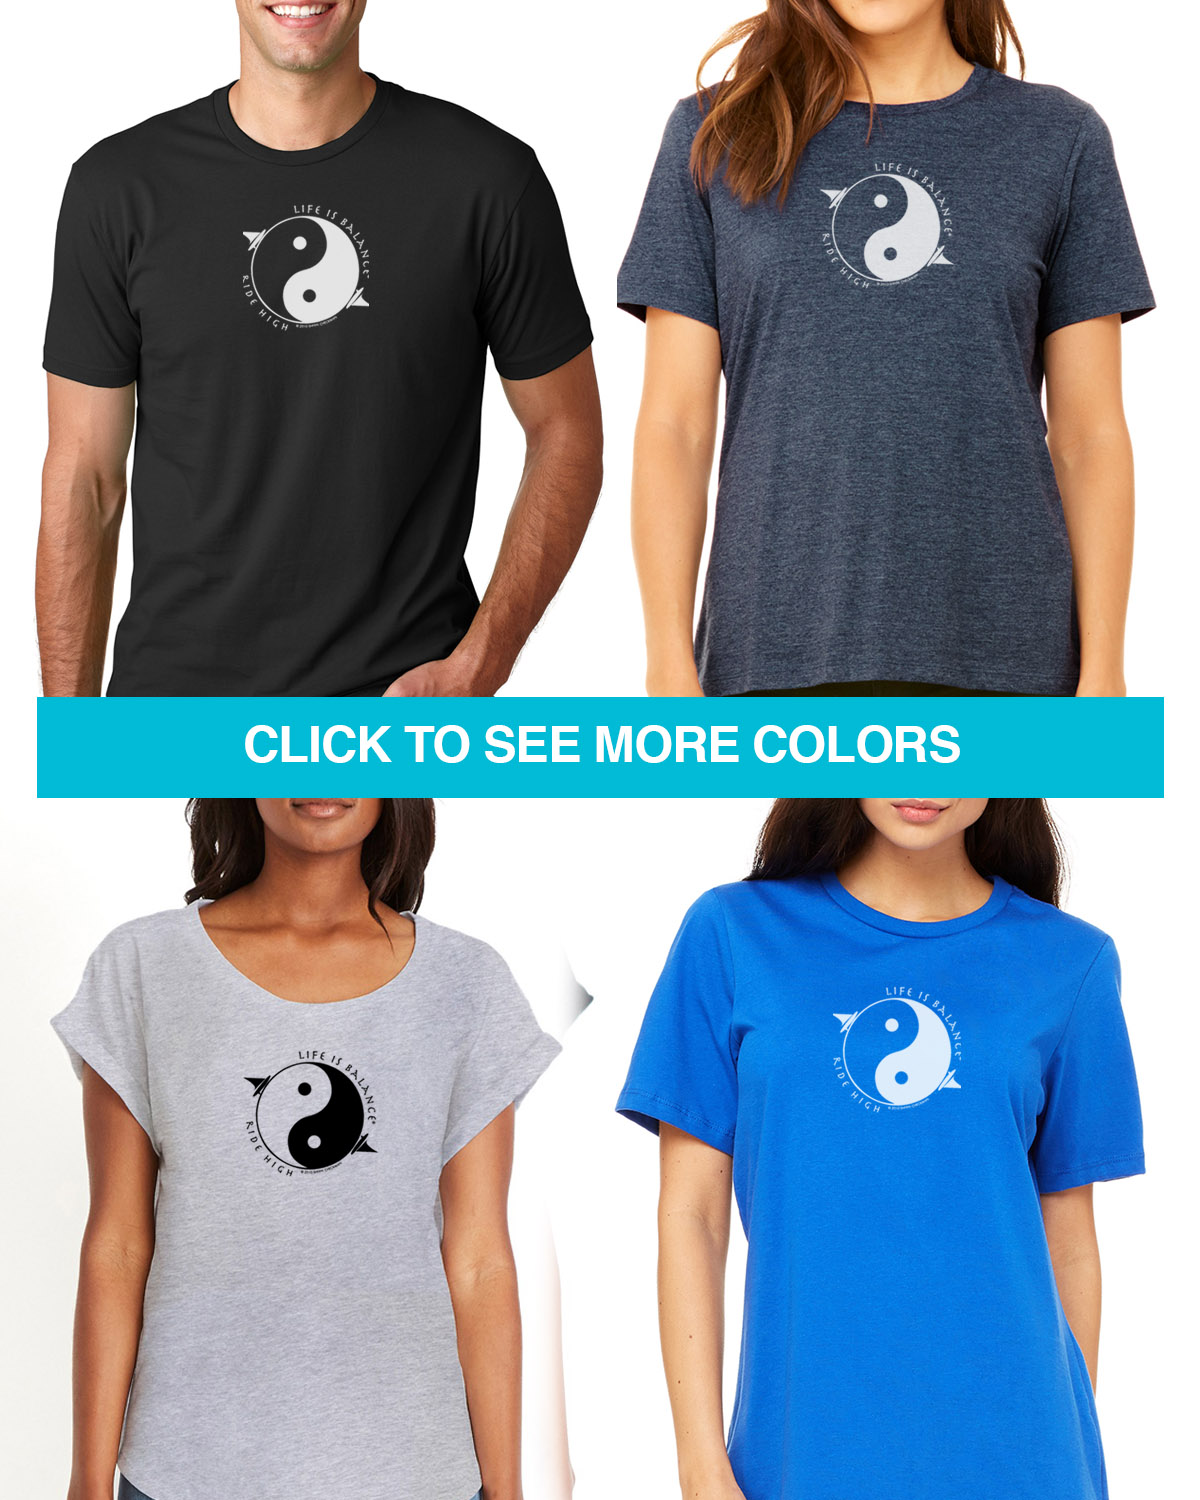 Windsurfing Tees for Men & Women